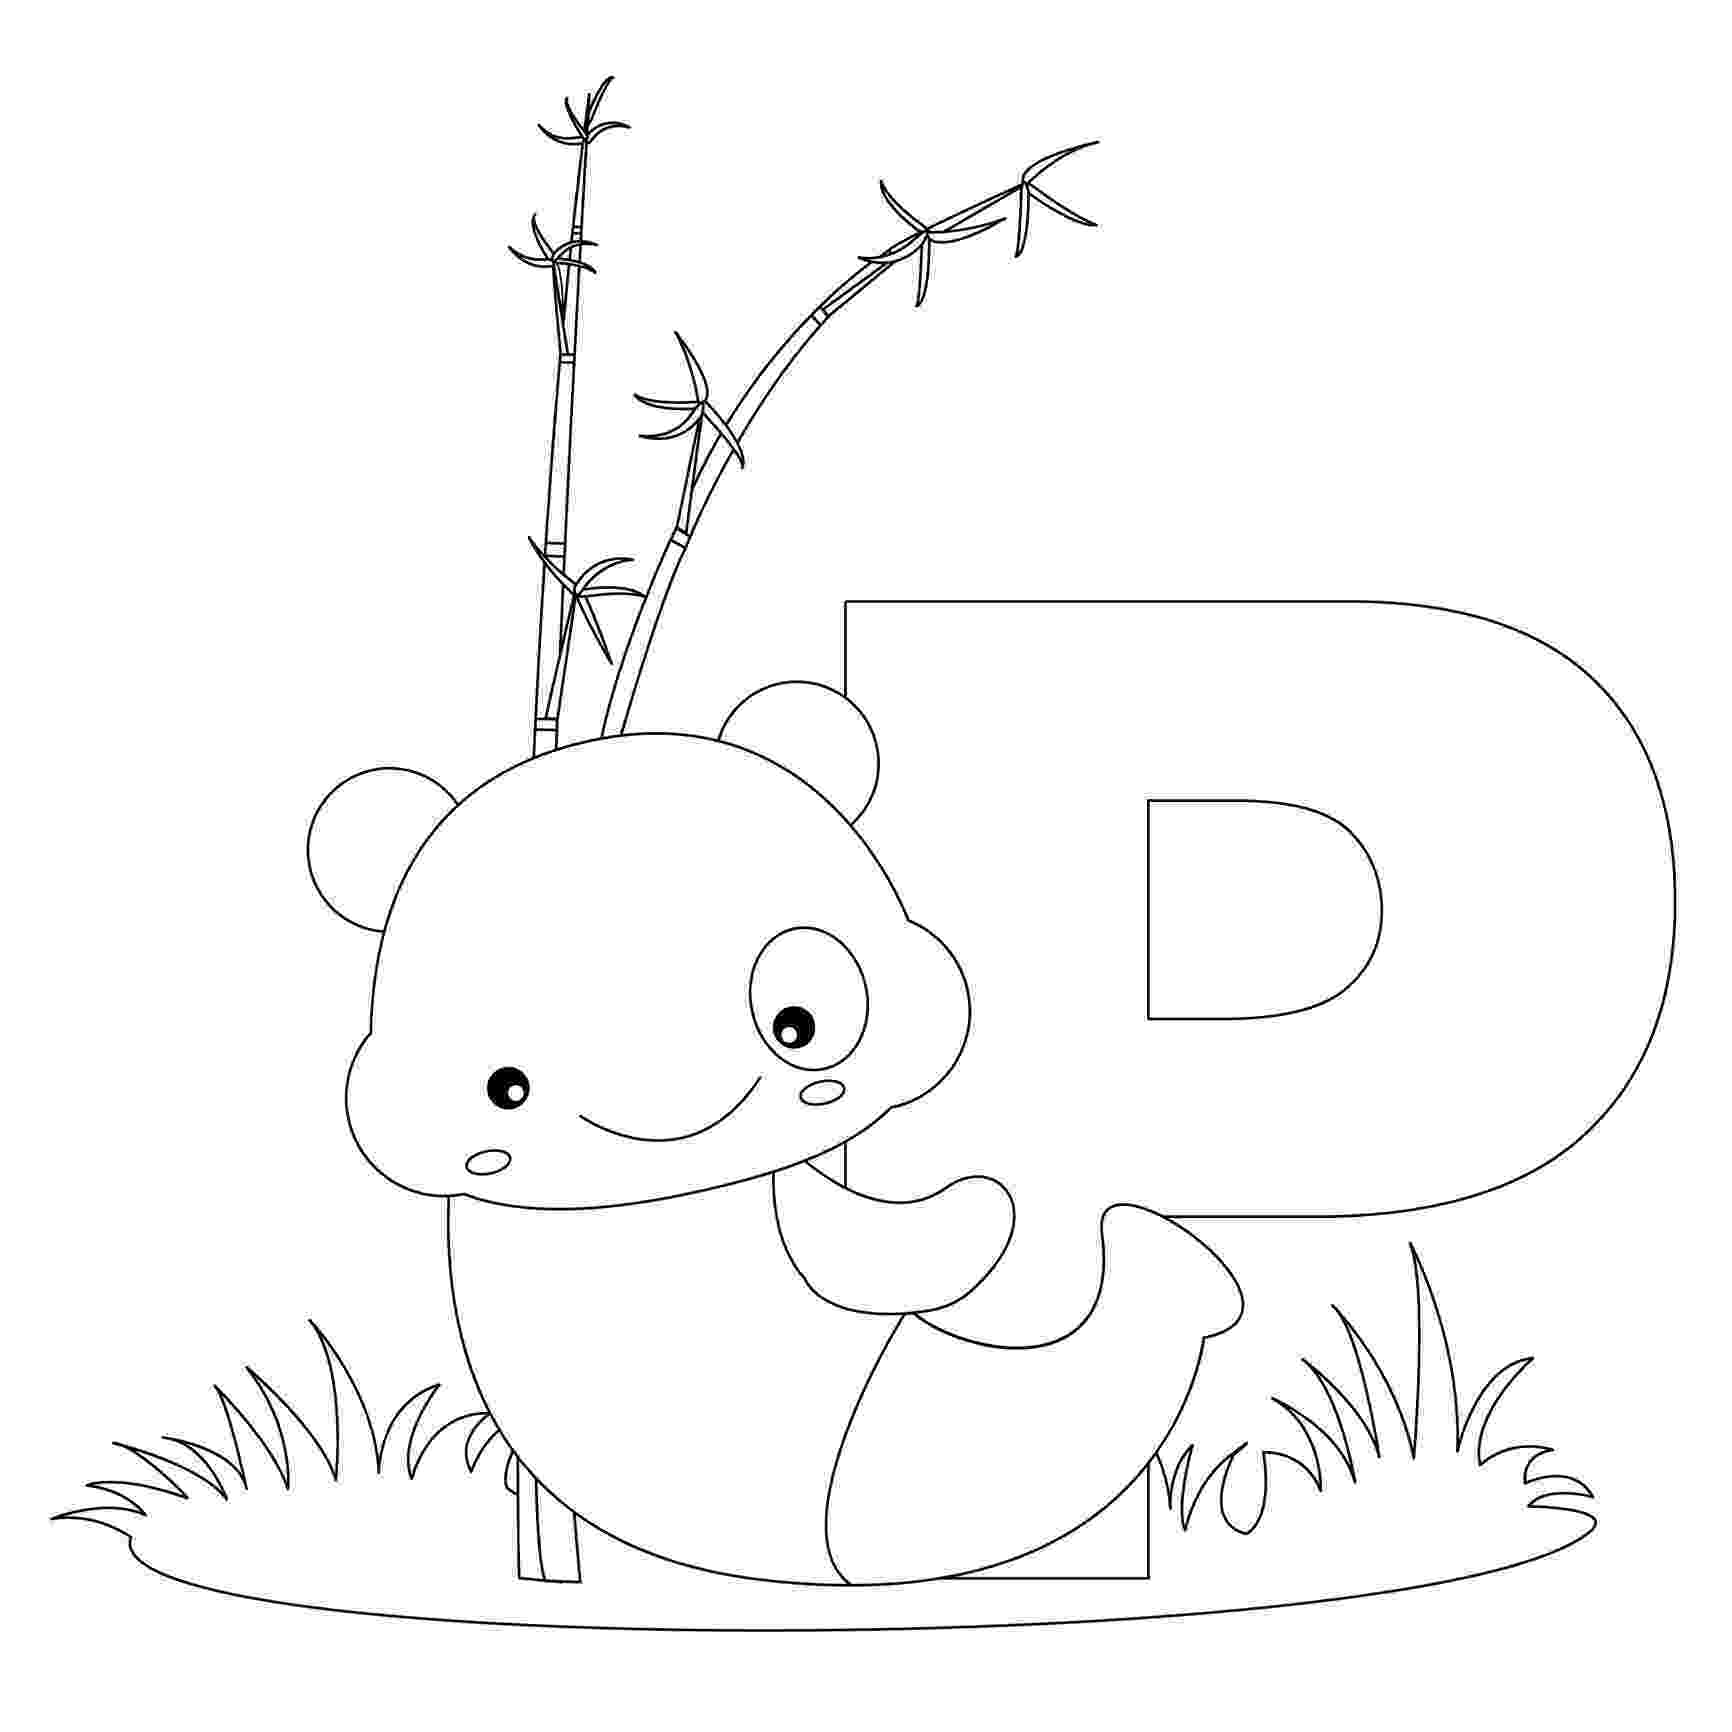 coloring animal alphabet awesome animal alphabet coloring pages lots of other good coloring alphabet animal